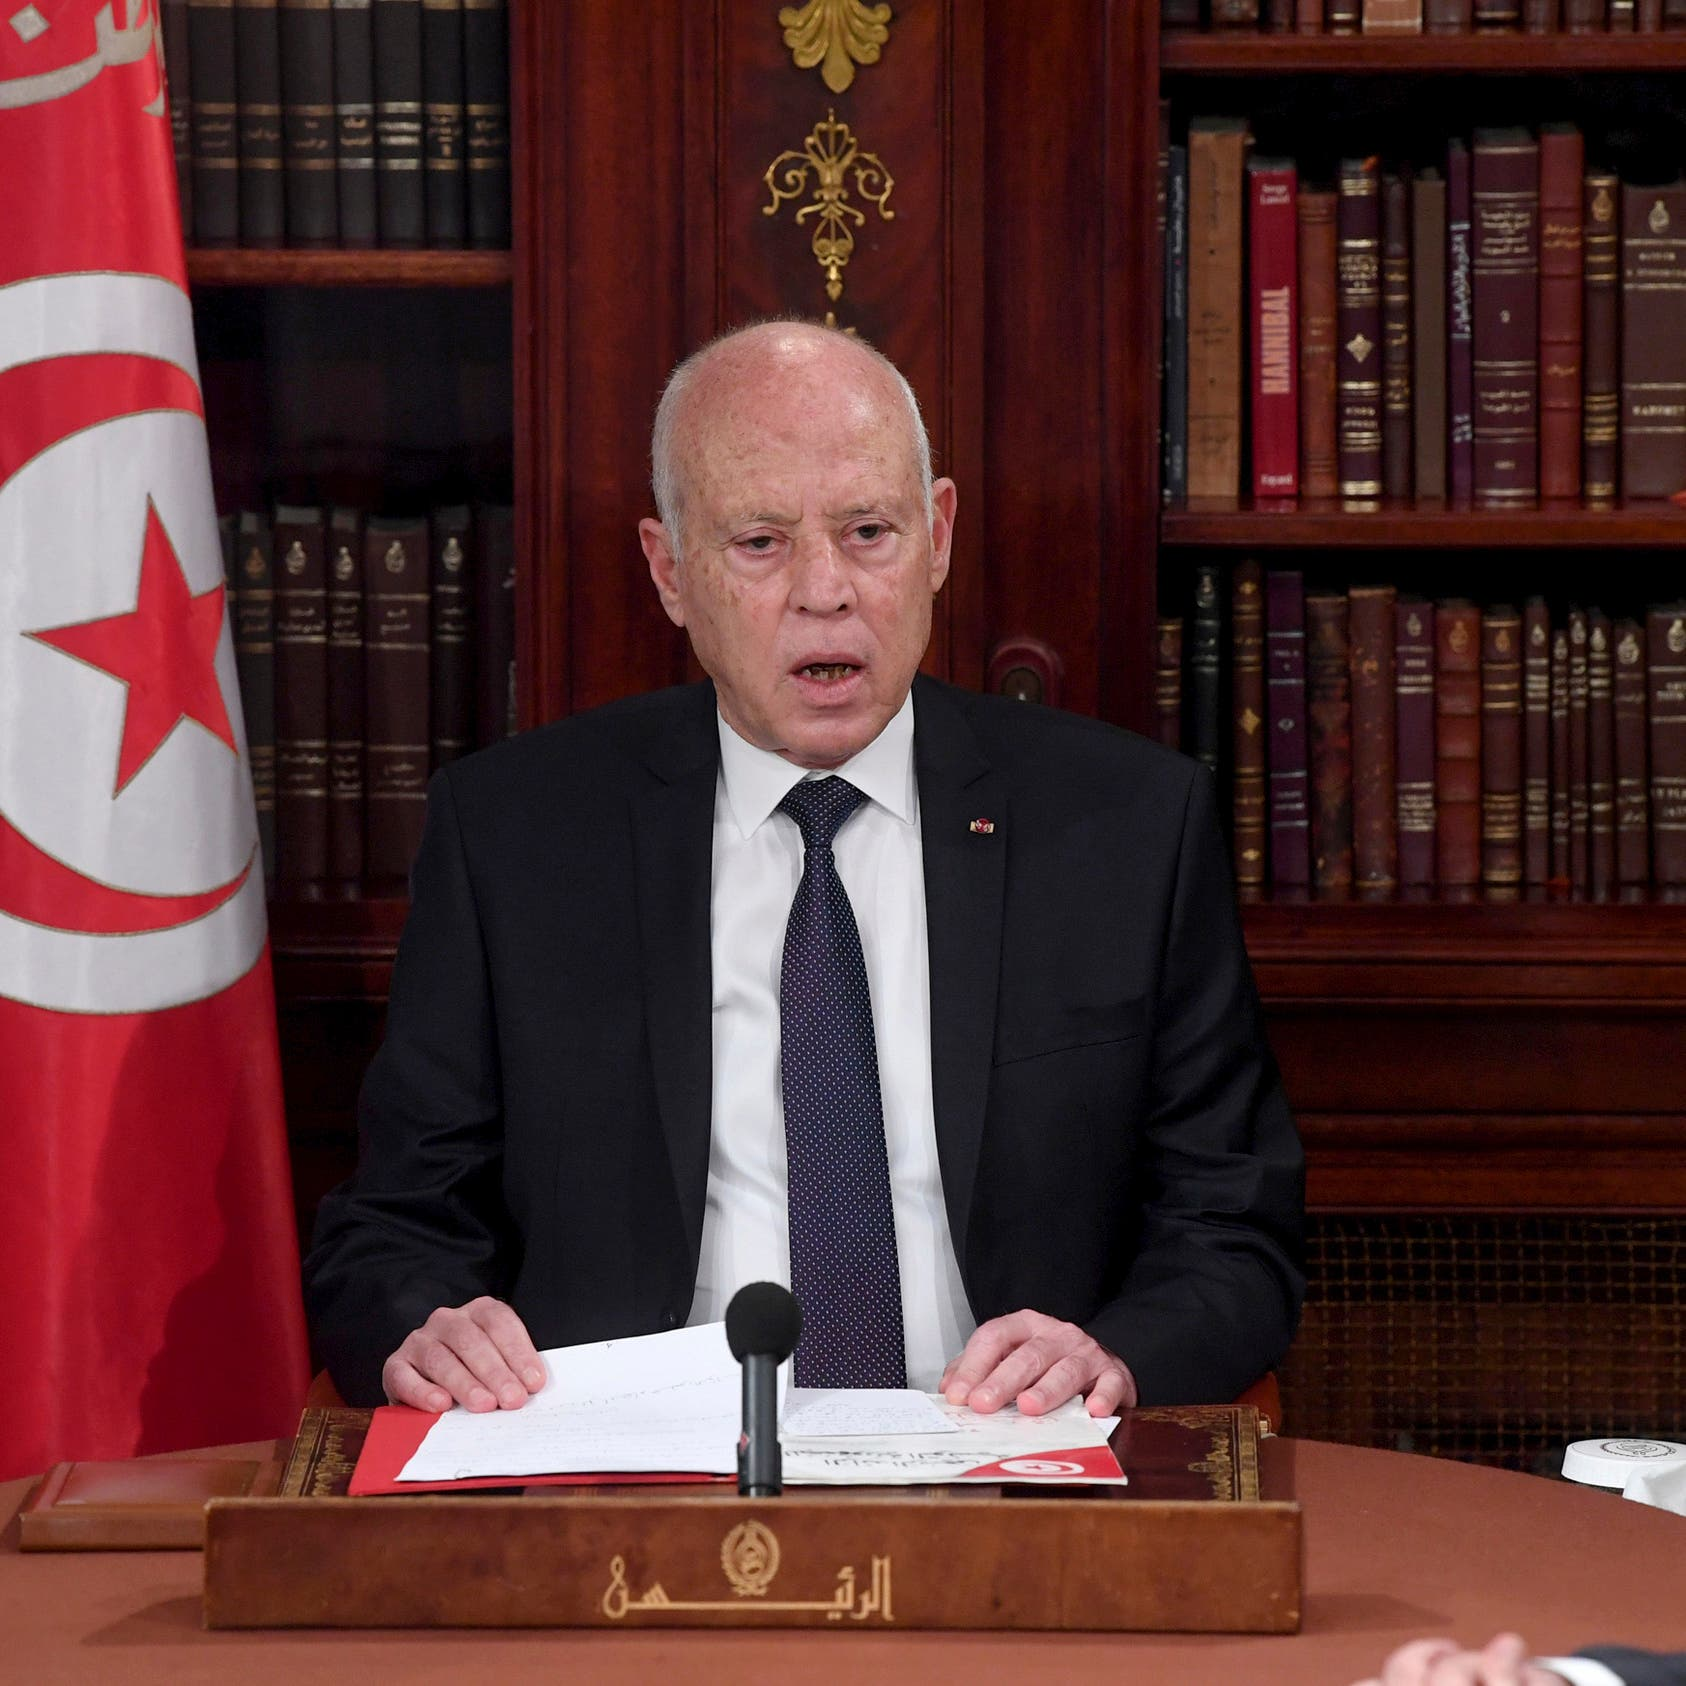 Tunisia president says he will not become a dictator after arrest of MP blogger Ayari